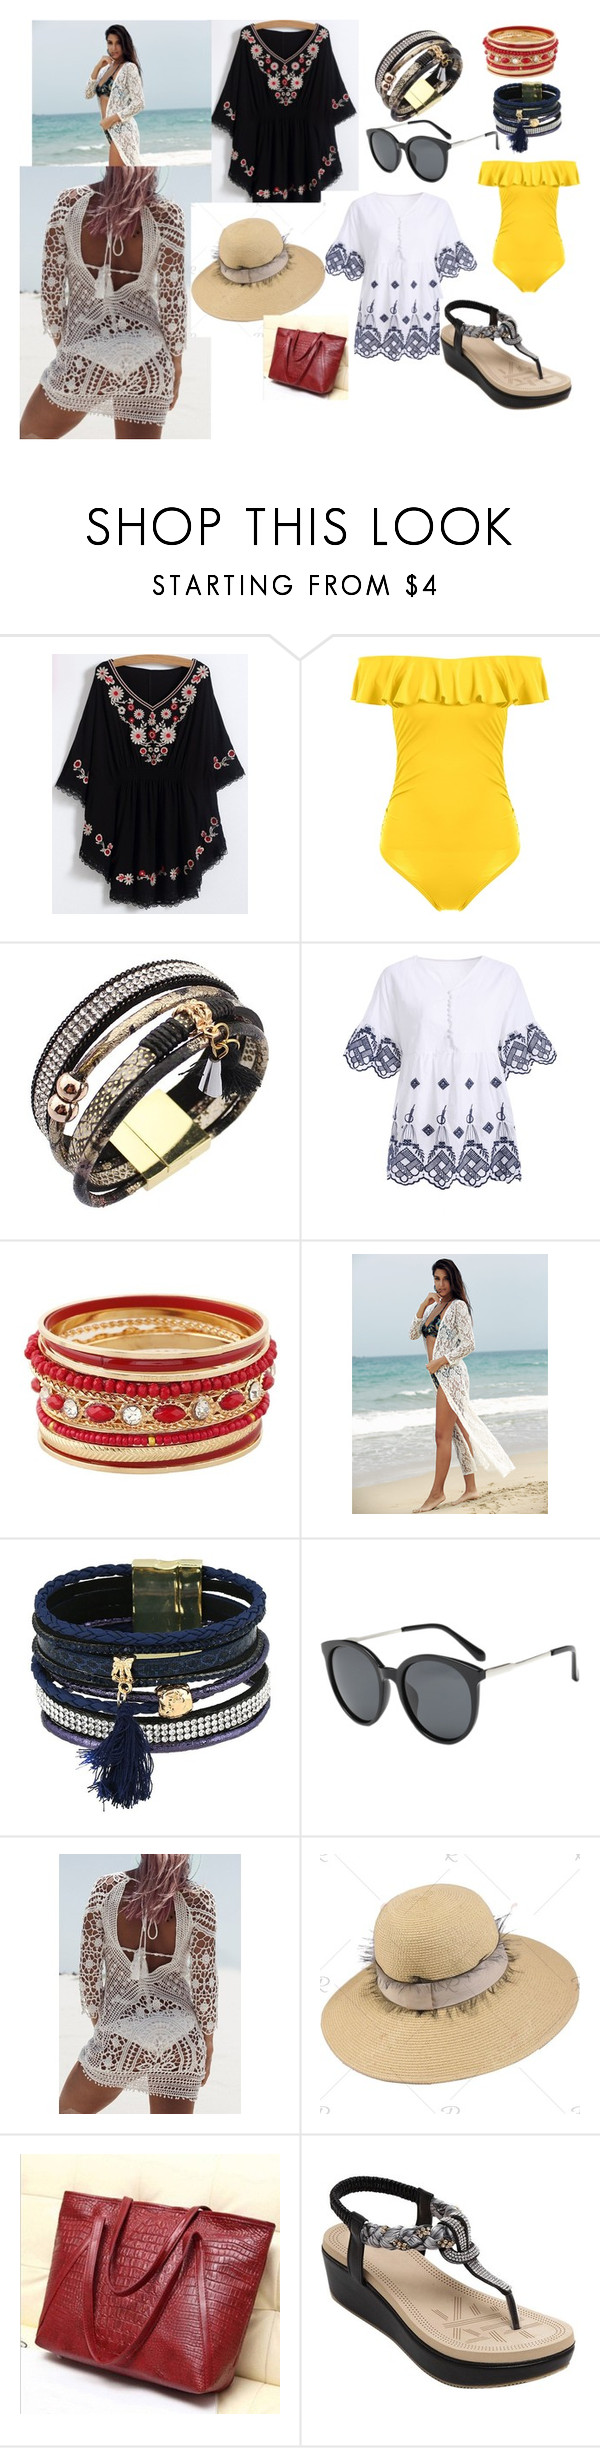 """vamosalaplaya ROSEGAL"" by melisaa95 on Polyvore featuring moda"